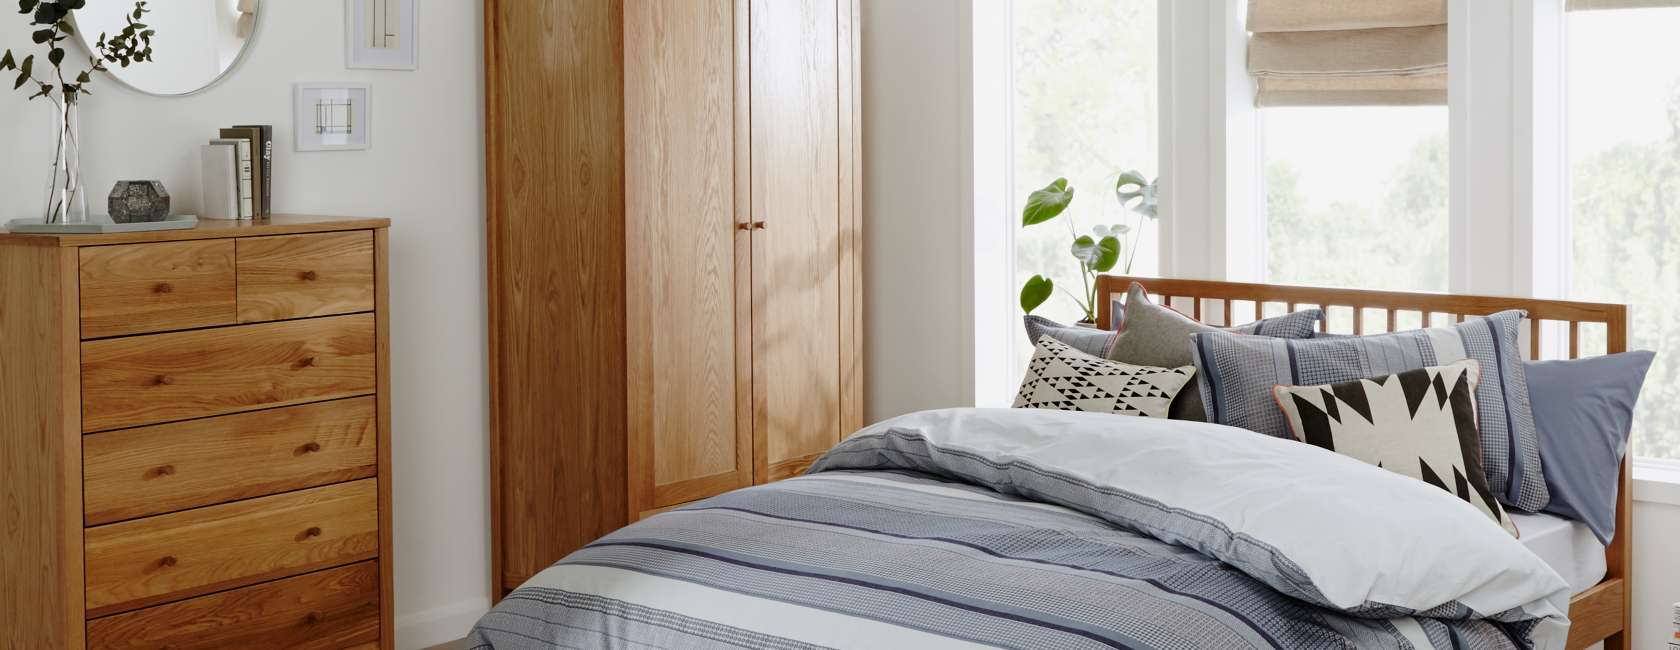 John lewis morgan bedroom furniture range at john lewis for Bedroom inspiration john lewis